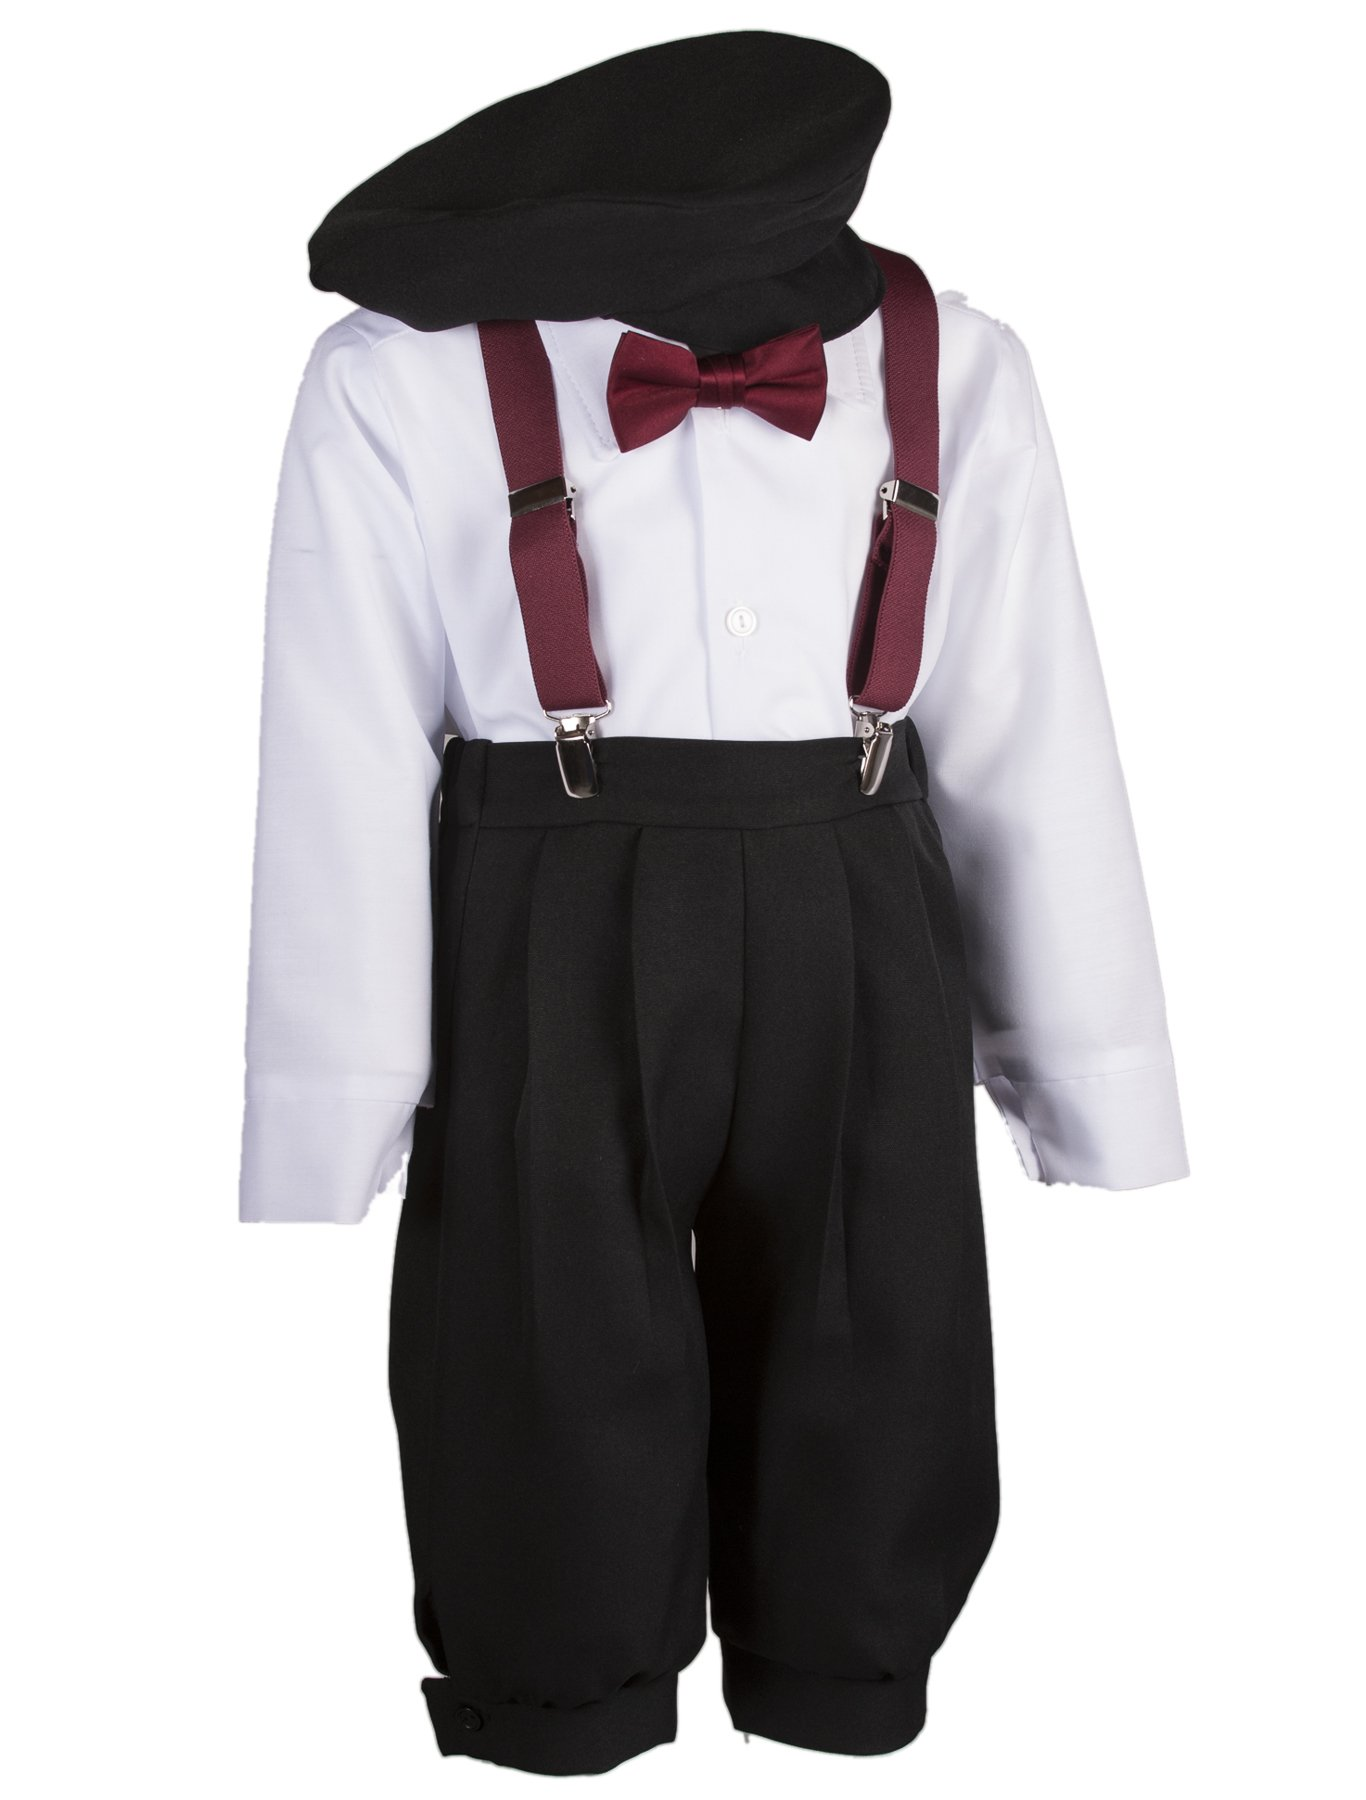 Boys Black Knickers Set Pageboy Cap Burgundy Suspenders & Bow Tie (6 Boys)